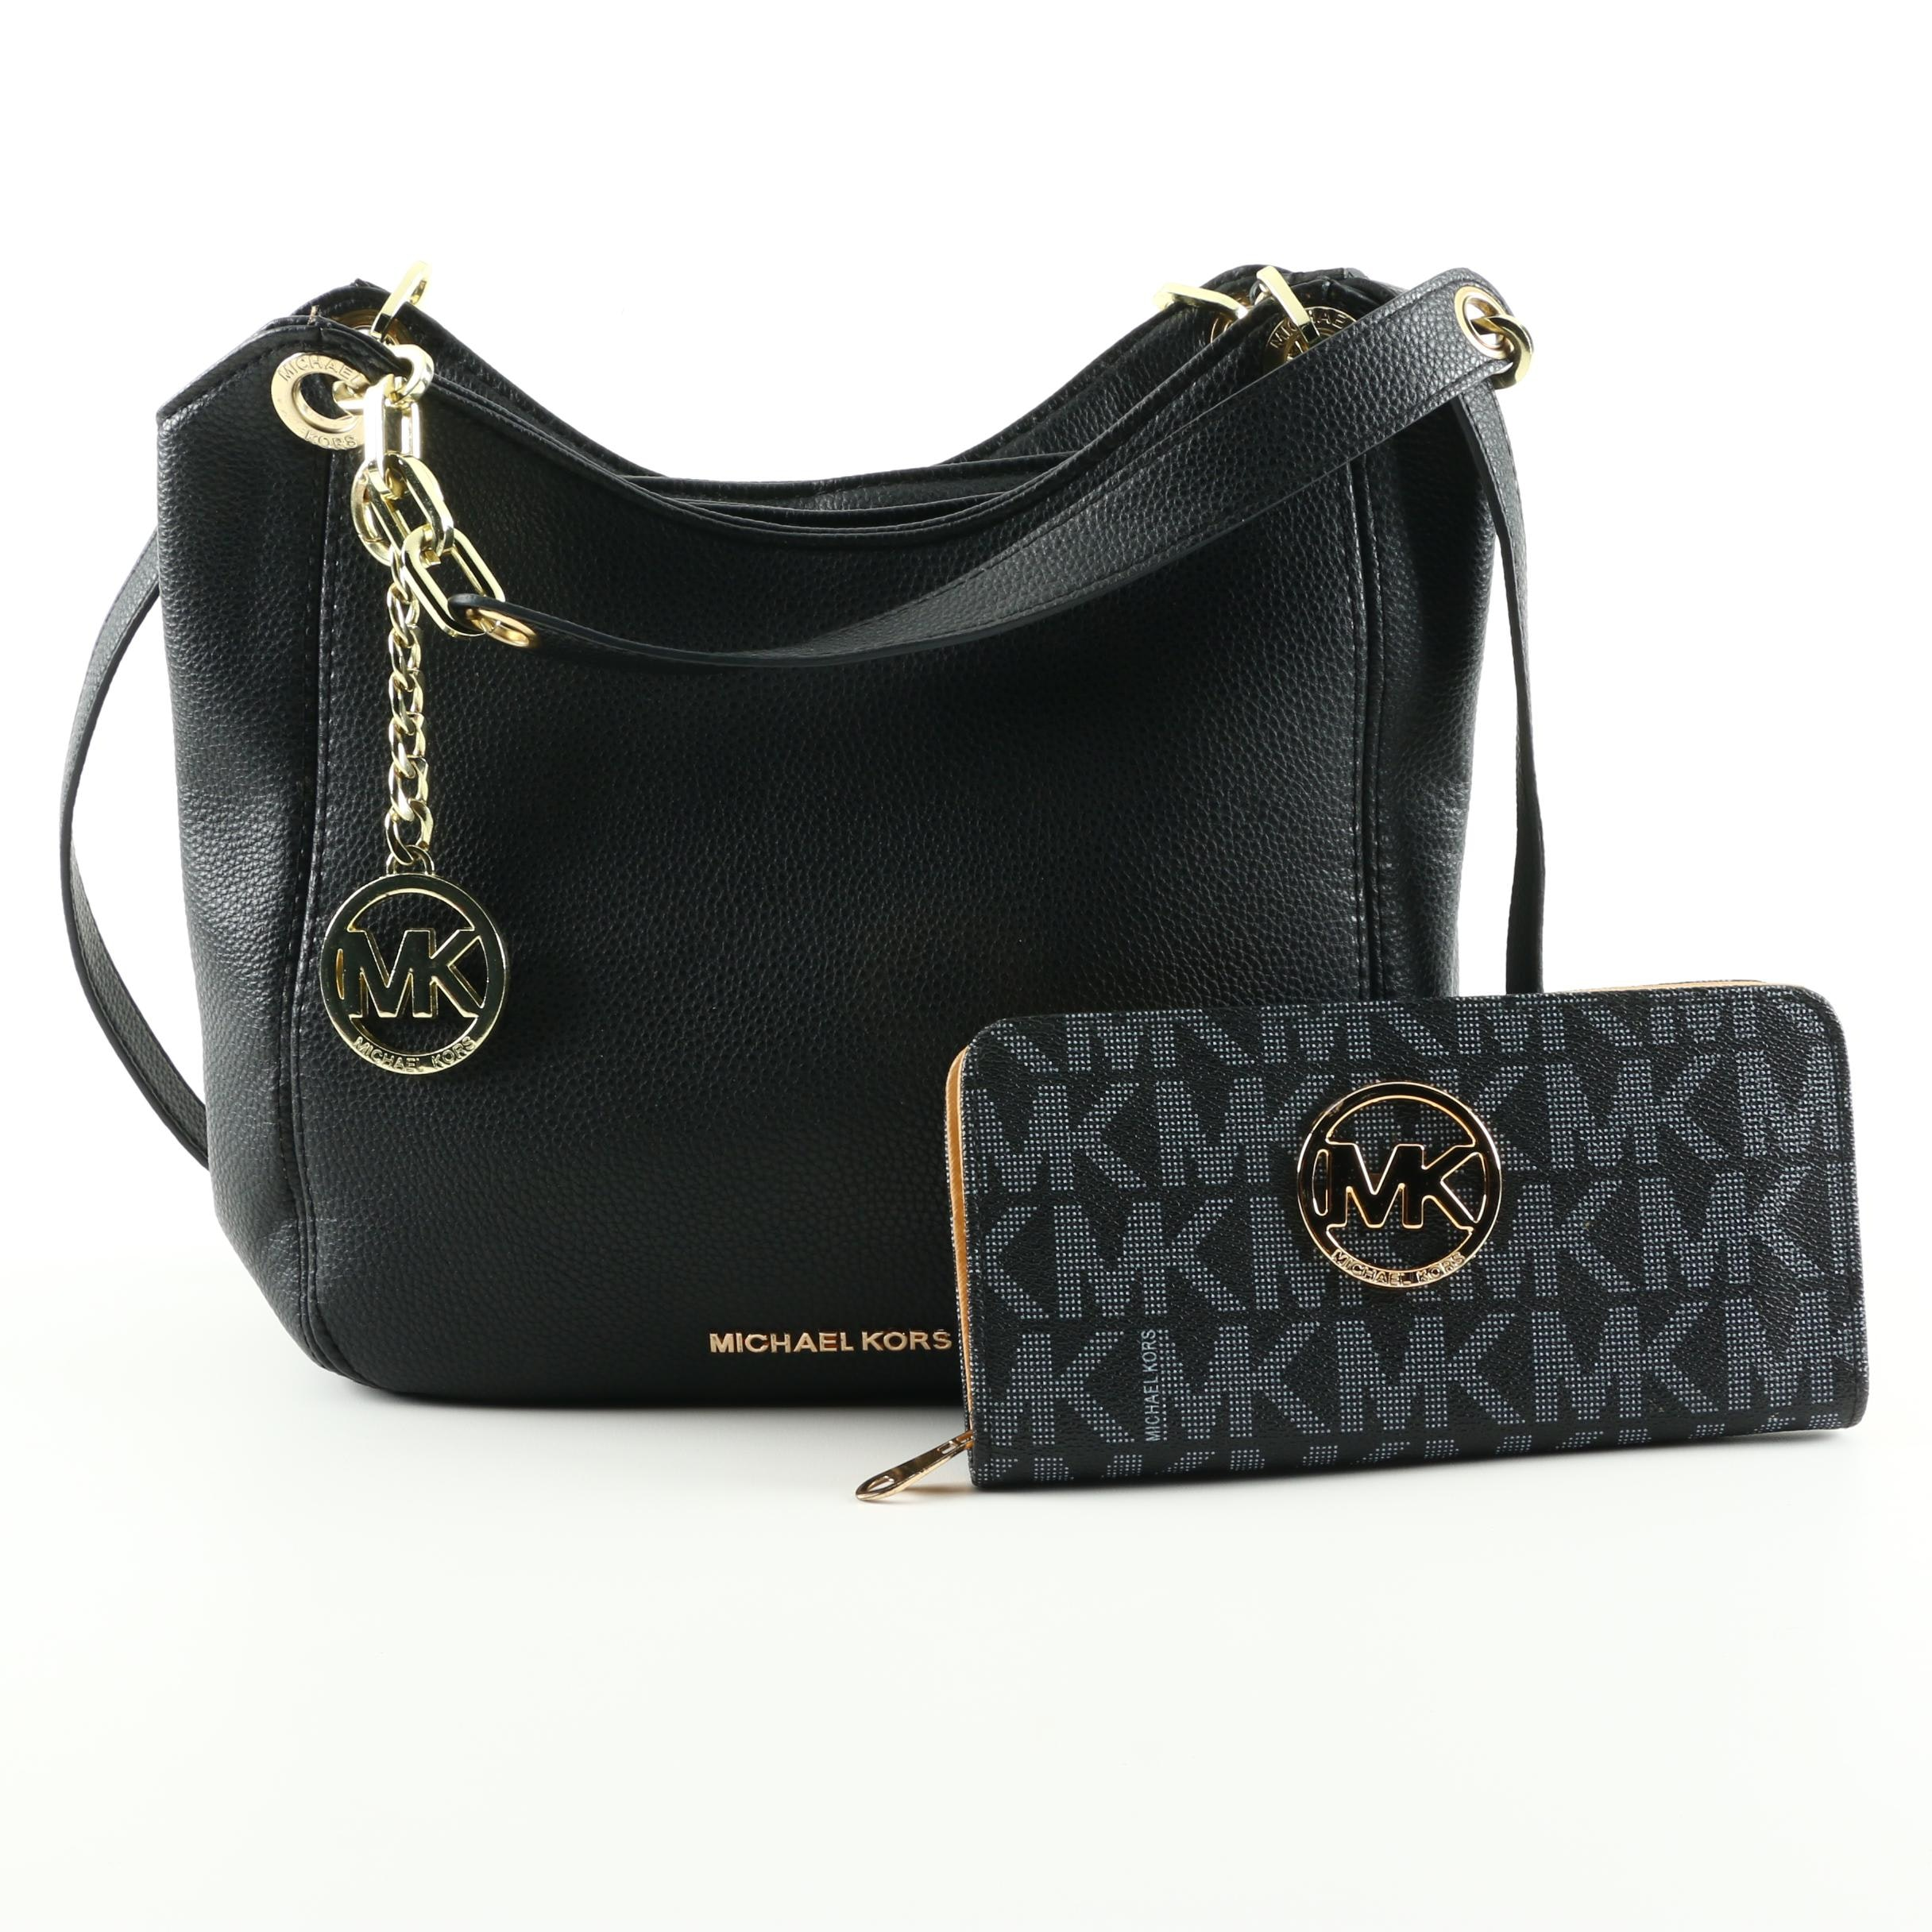 Michael Kors Black Handbag and Wallet